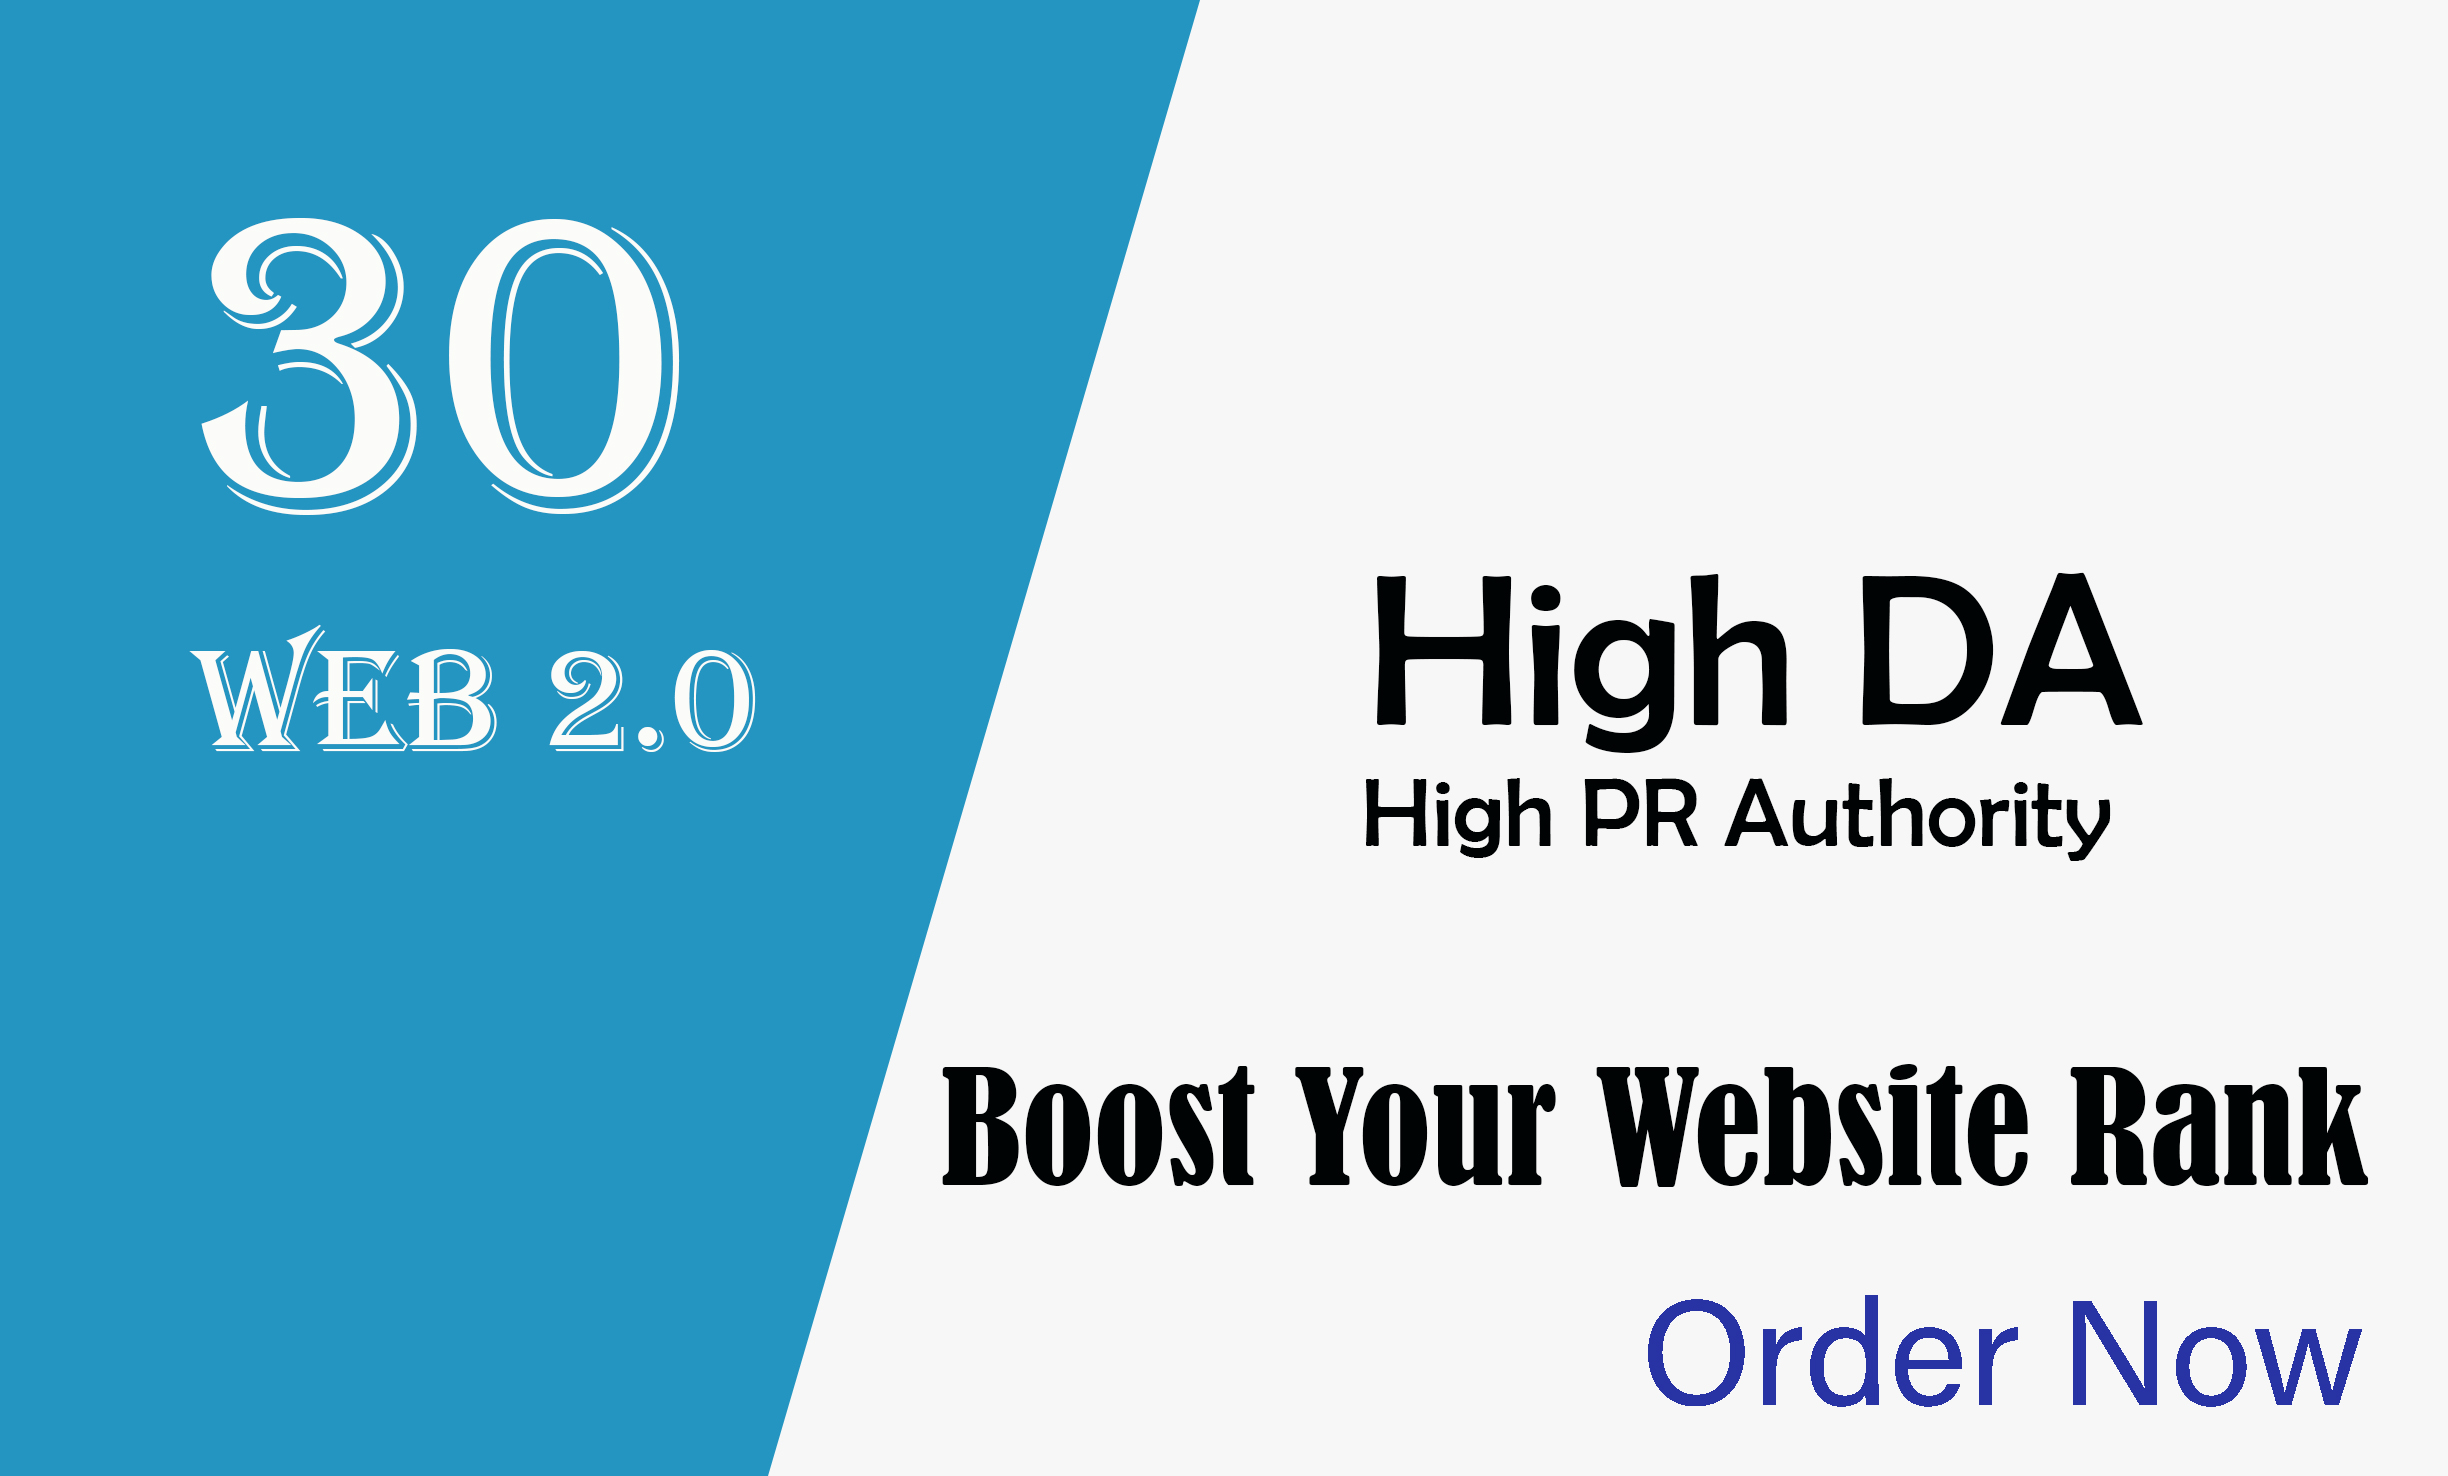 I will skyrocket your website with high PR web 2 0 sites